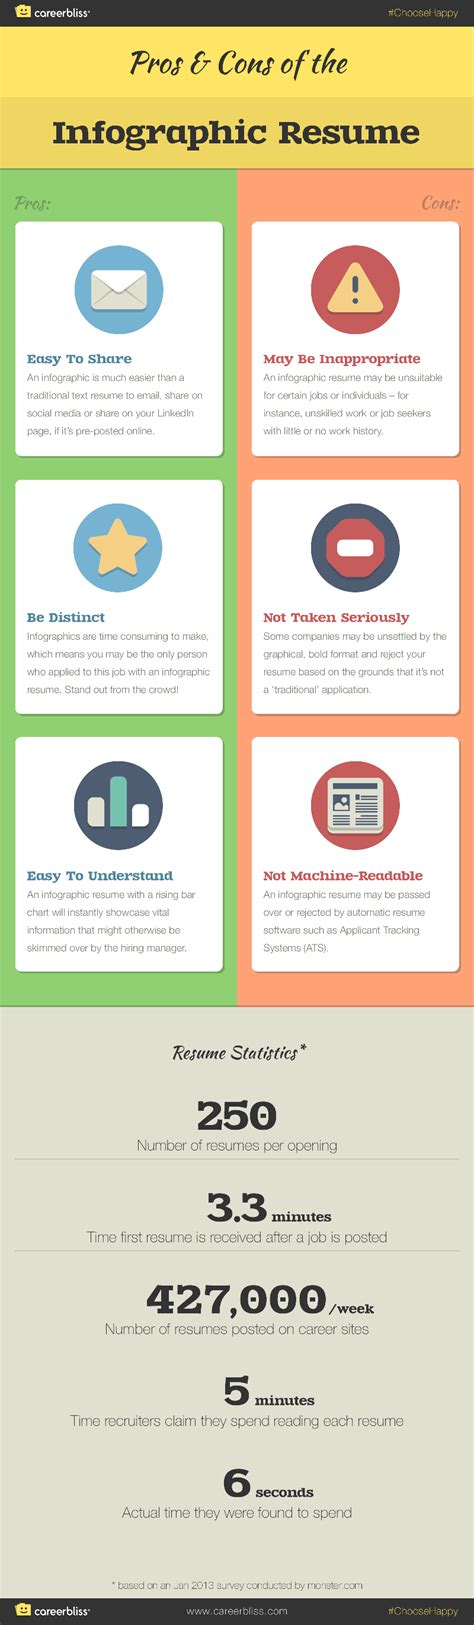 resume tip tuesday pros and cons of the infographic